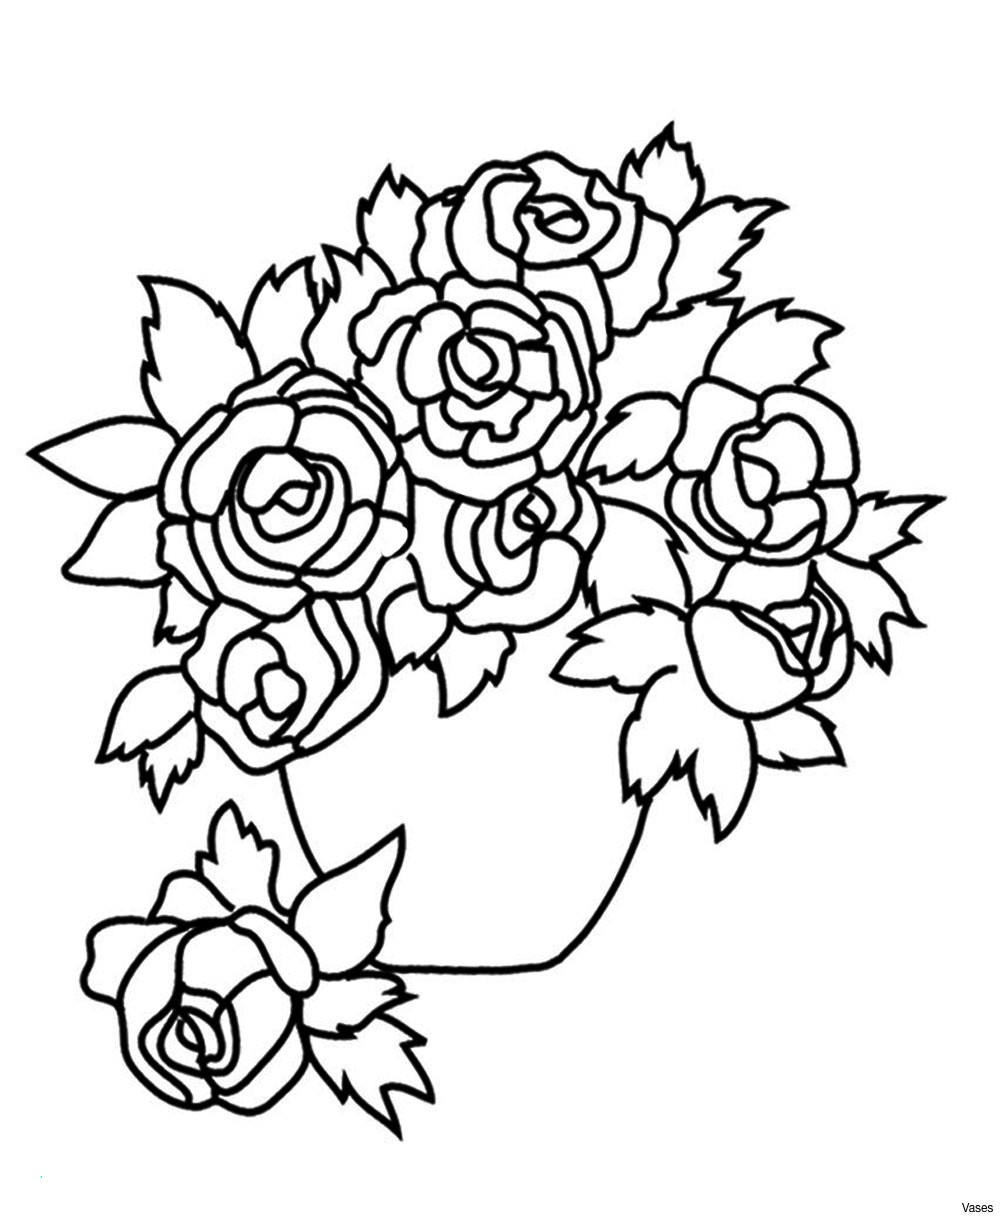 red flower vases for sale of colorful images fall flowers natural zoom regarding cool vases flower vase coloring page pages flowers in a top i 0d